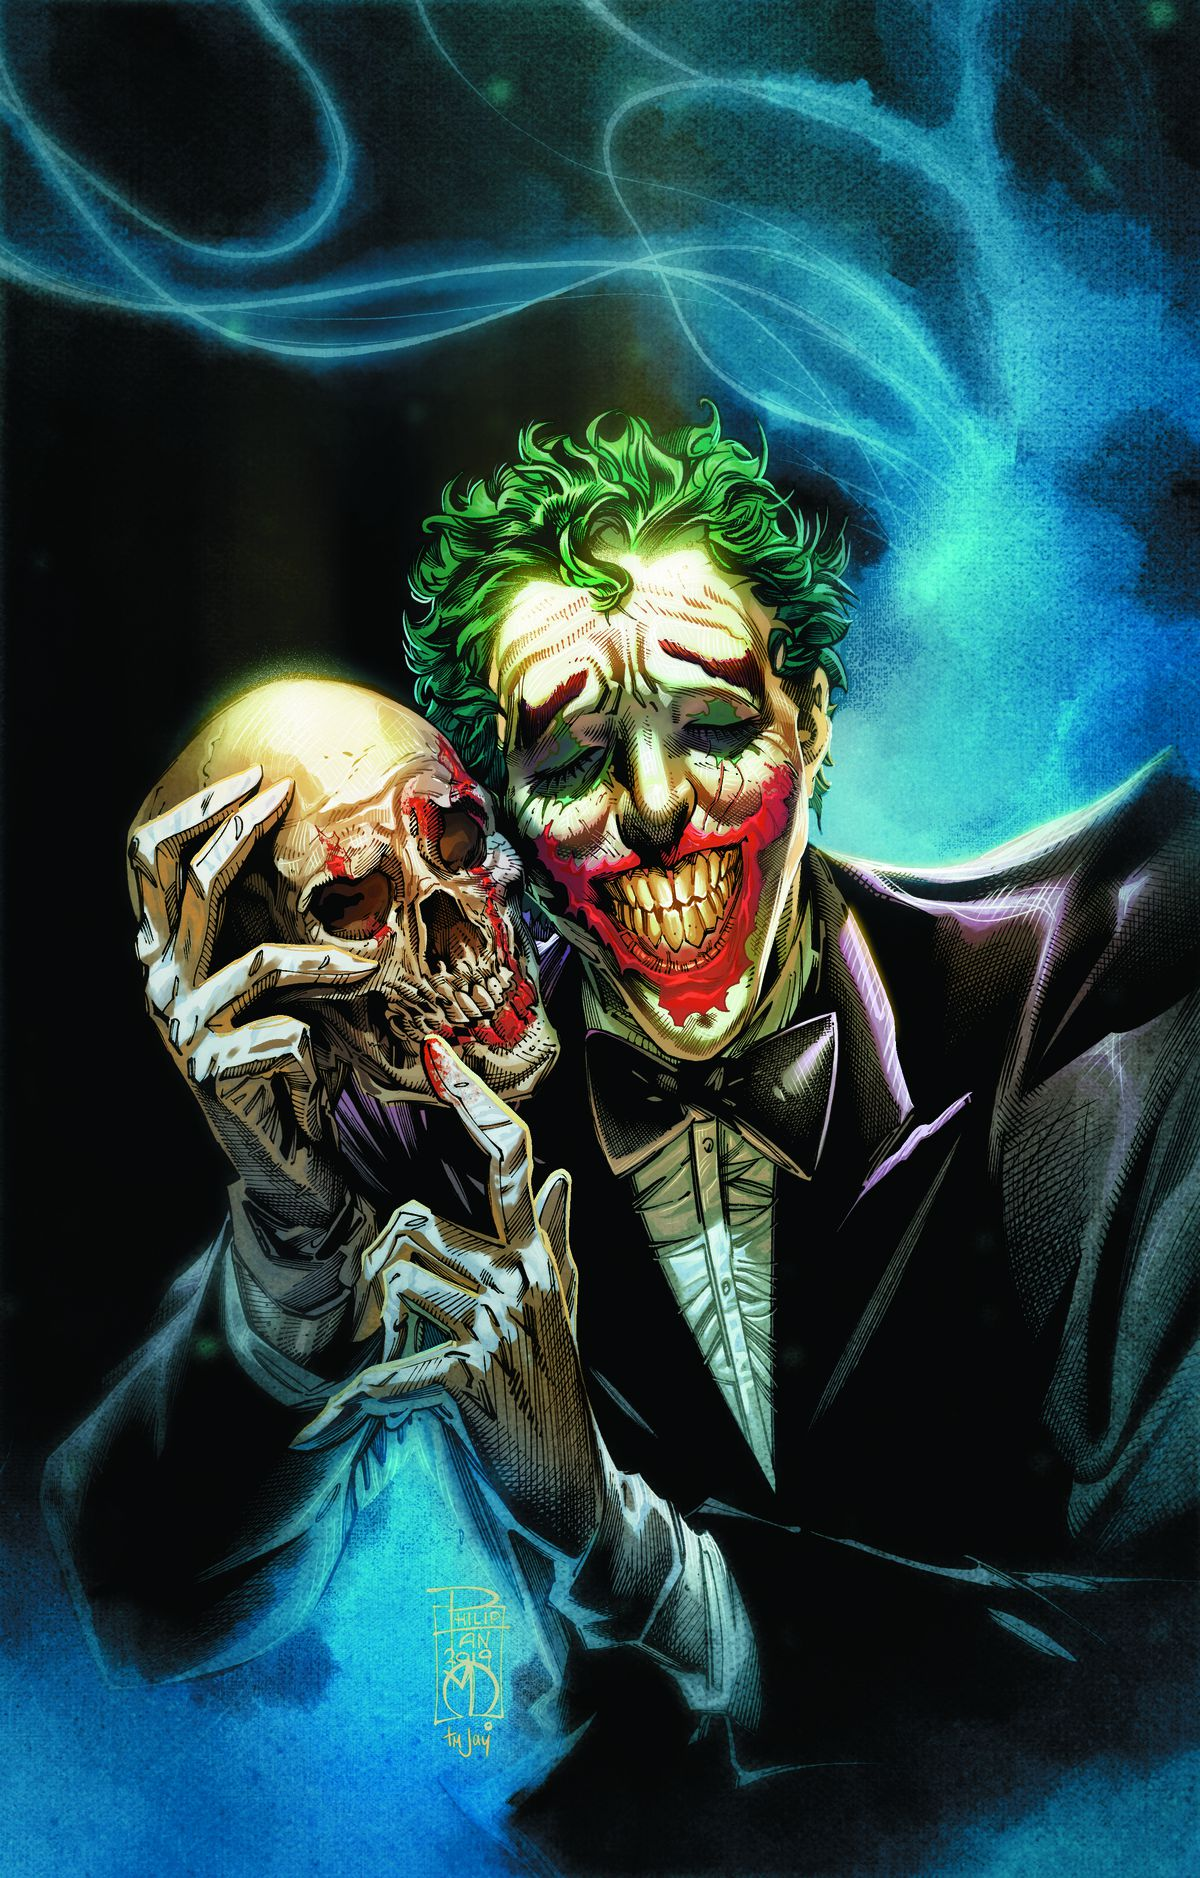 Carpenter Horror Joker writing John comic  a legend is